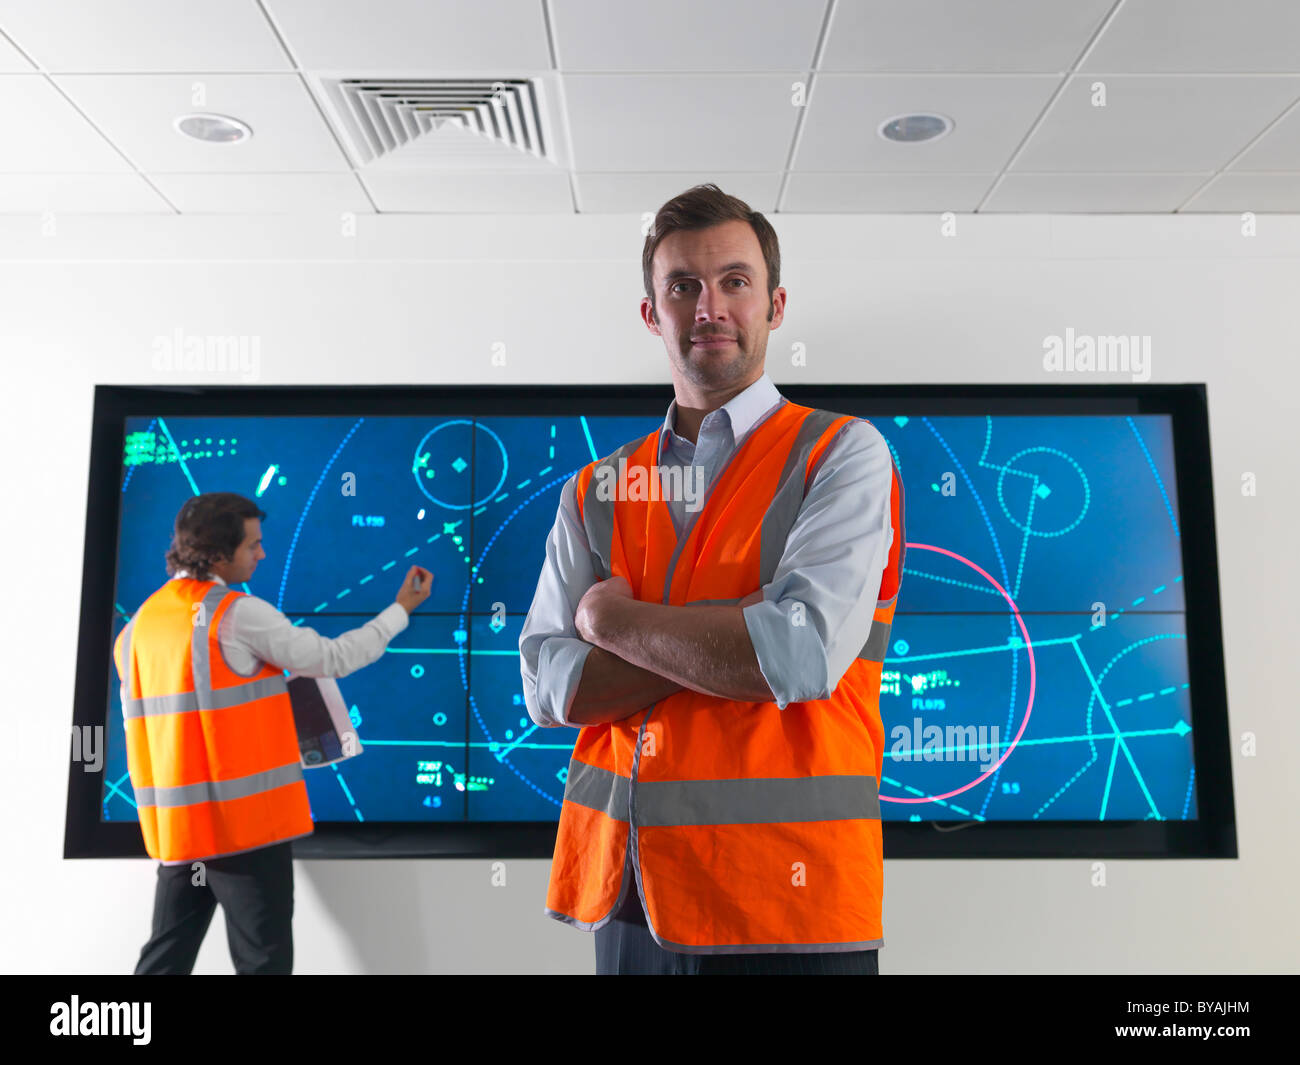 Air traffic controllers with screen - Stock Image